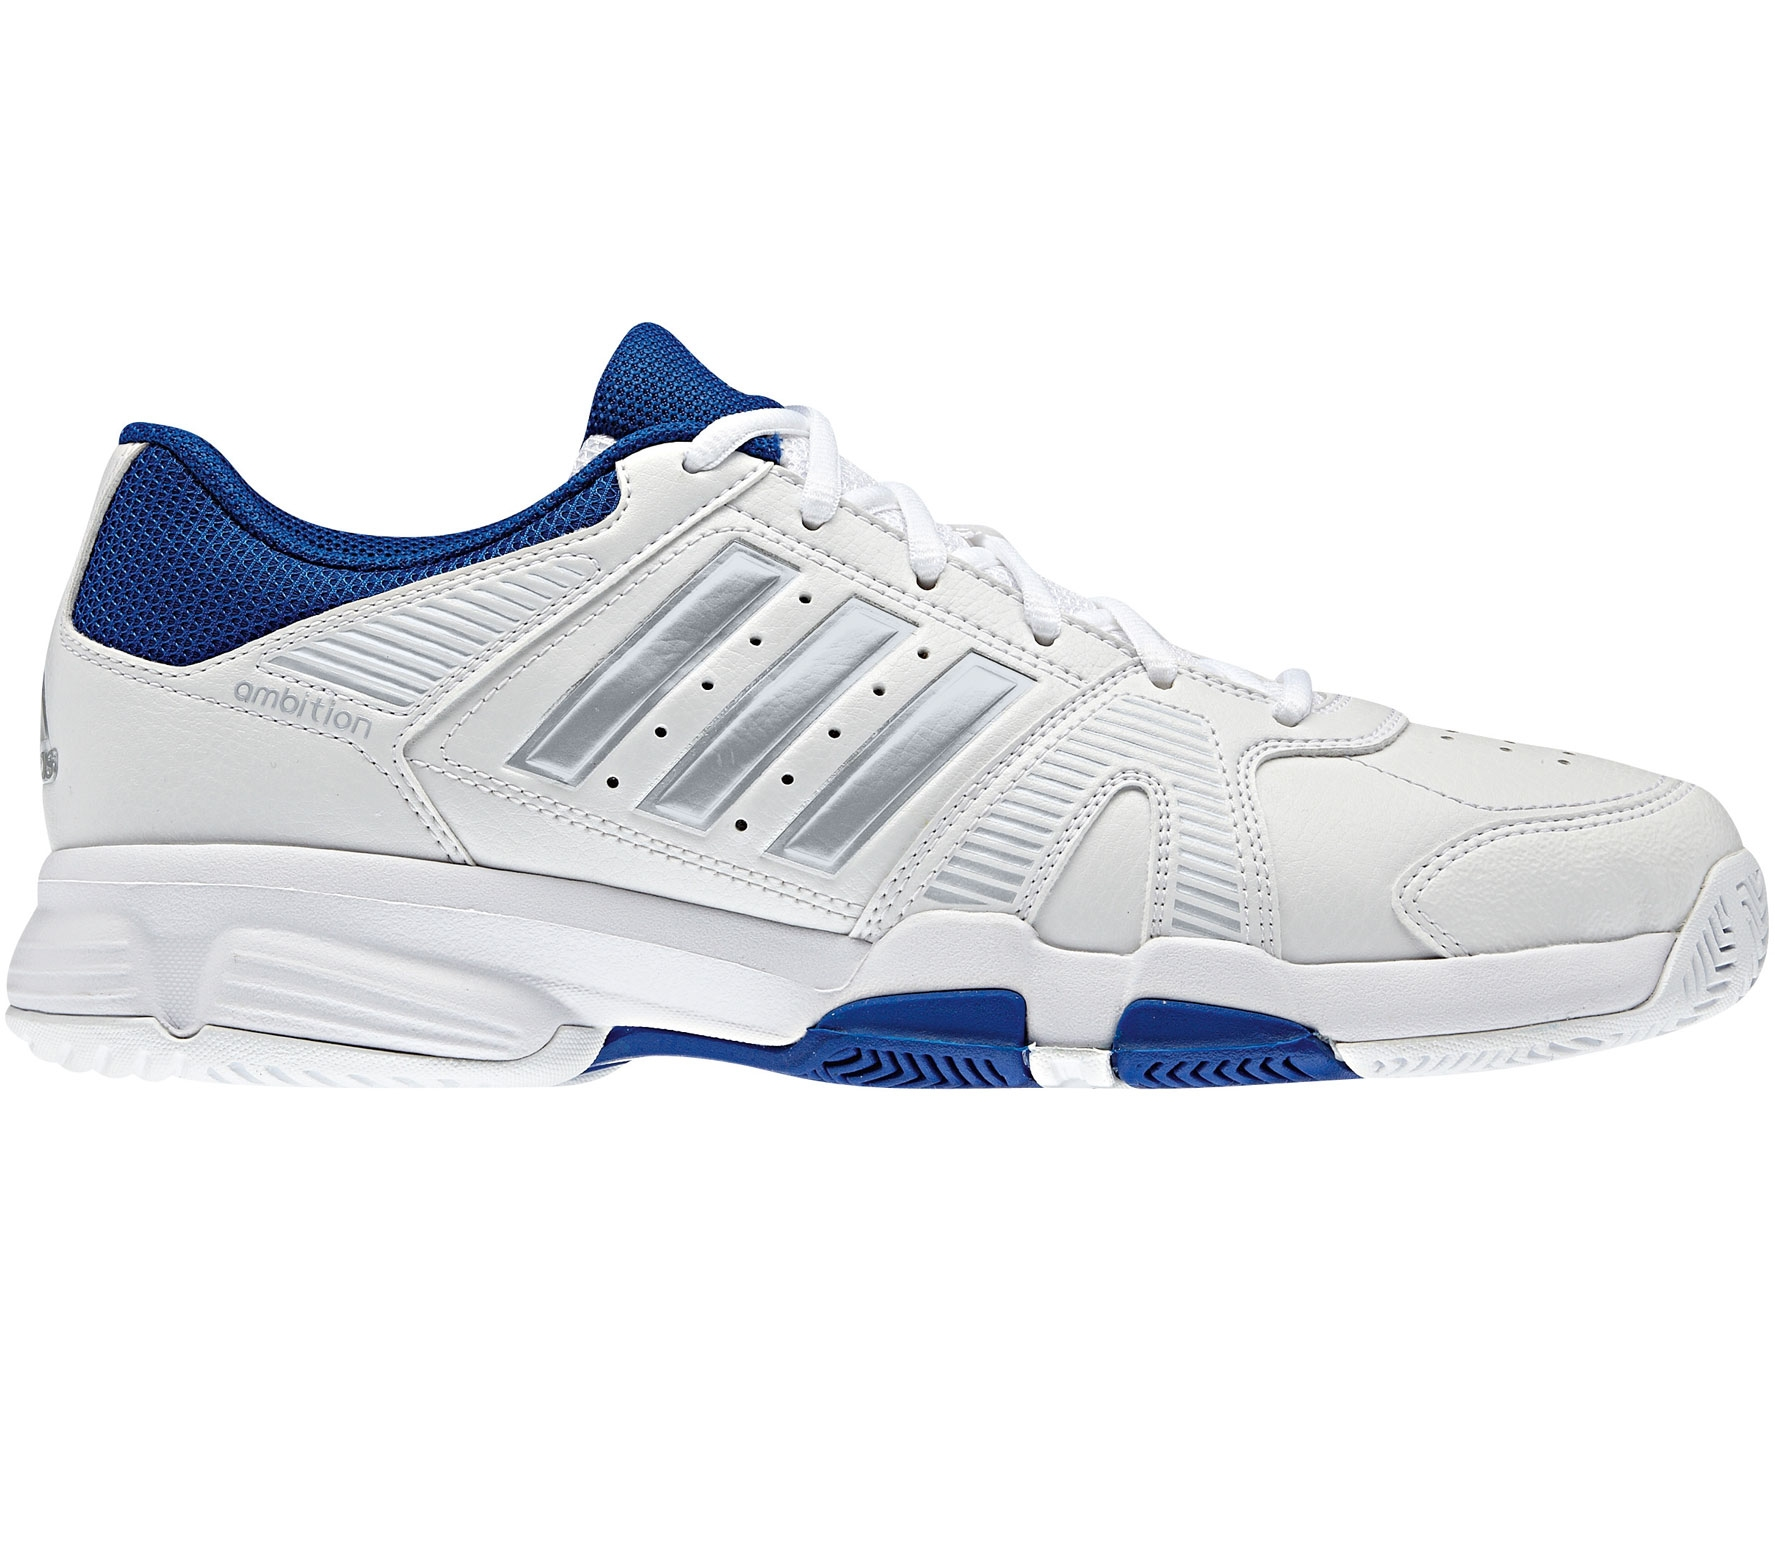 Adidas - Tennis Shoes Ambition VIII - SS13